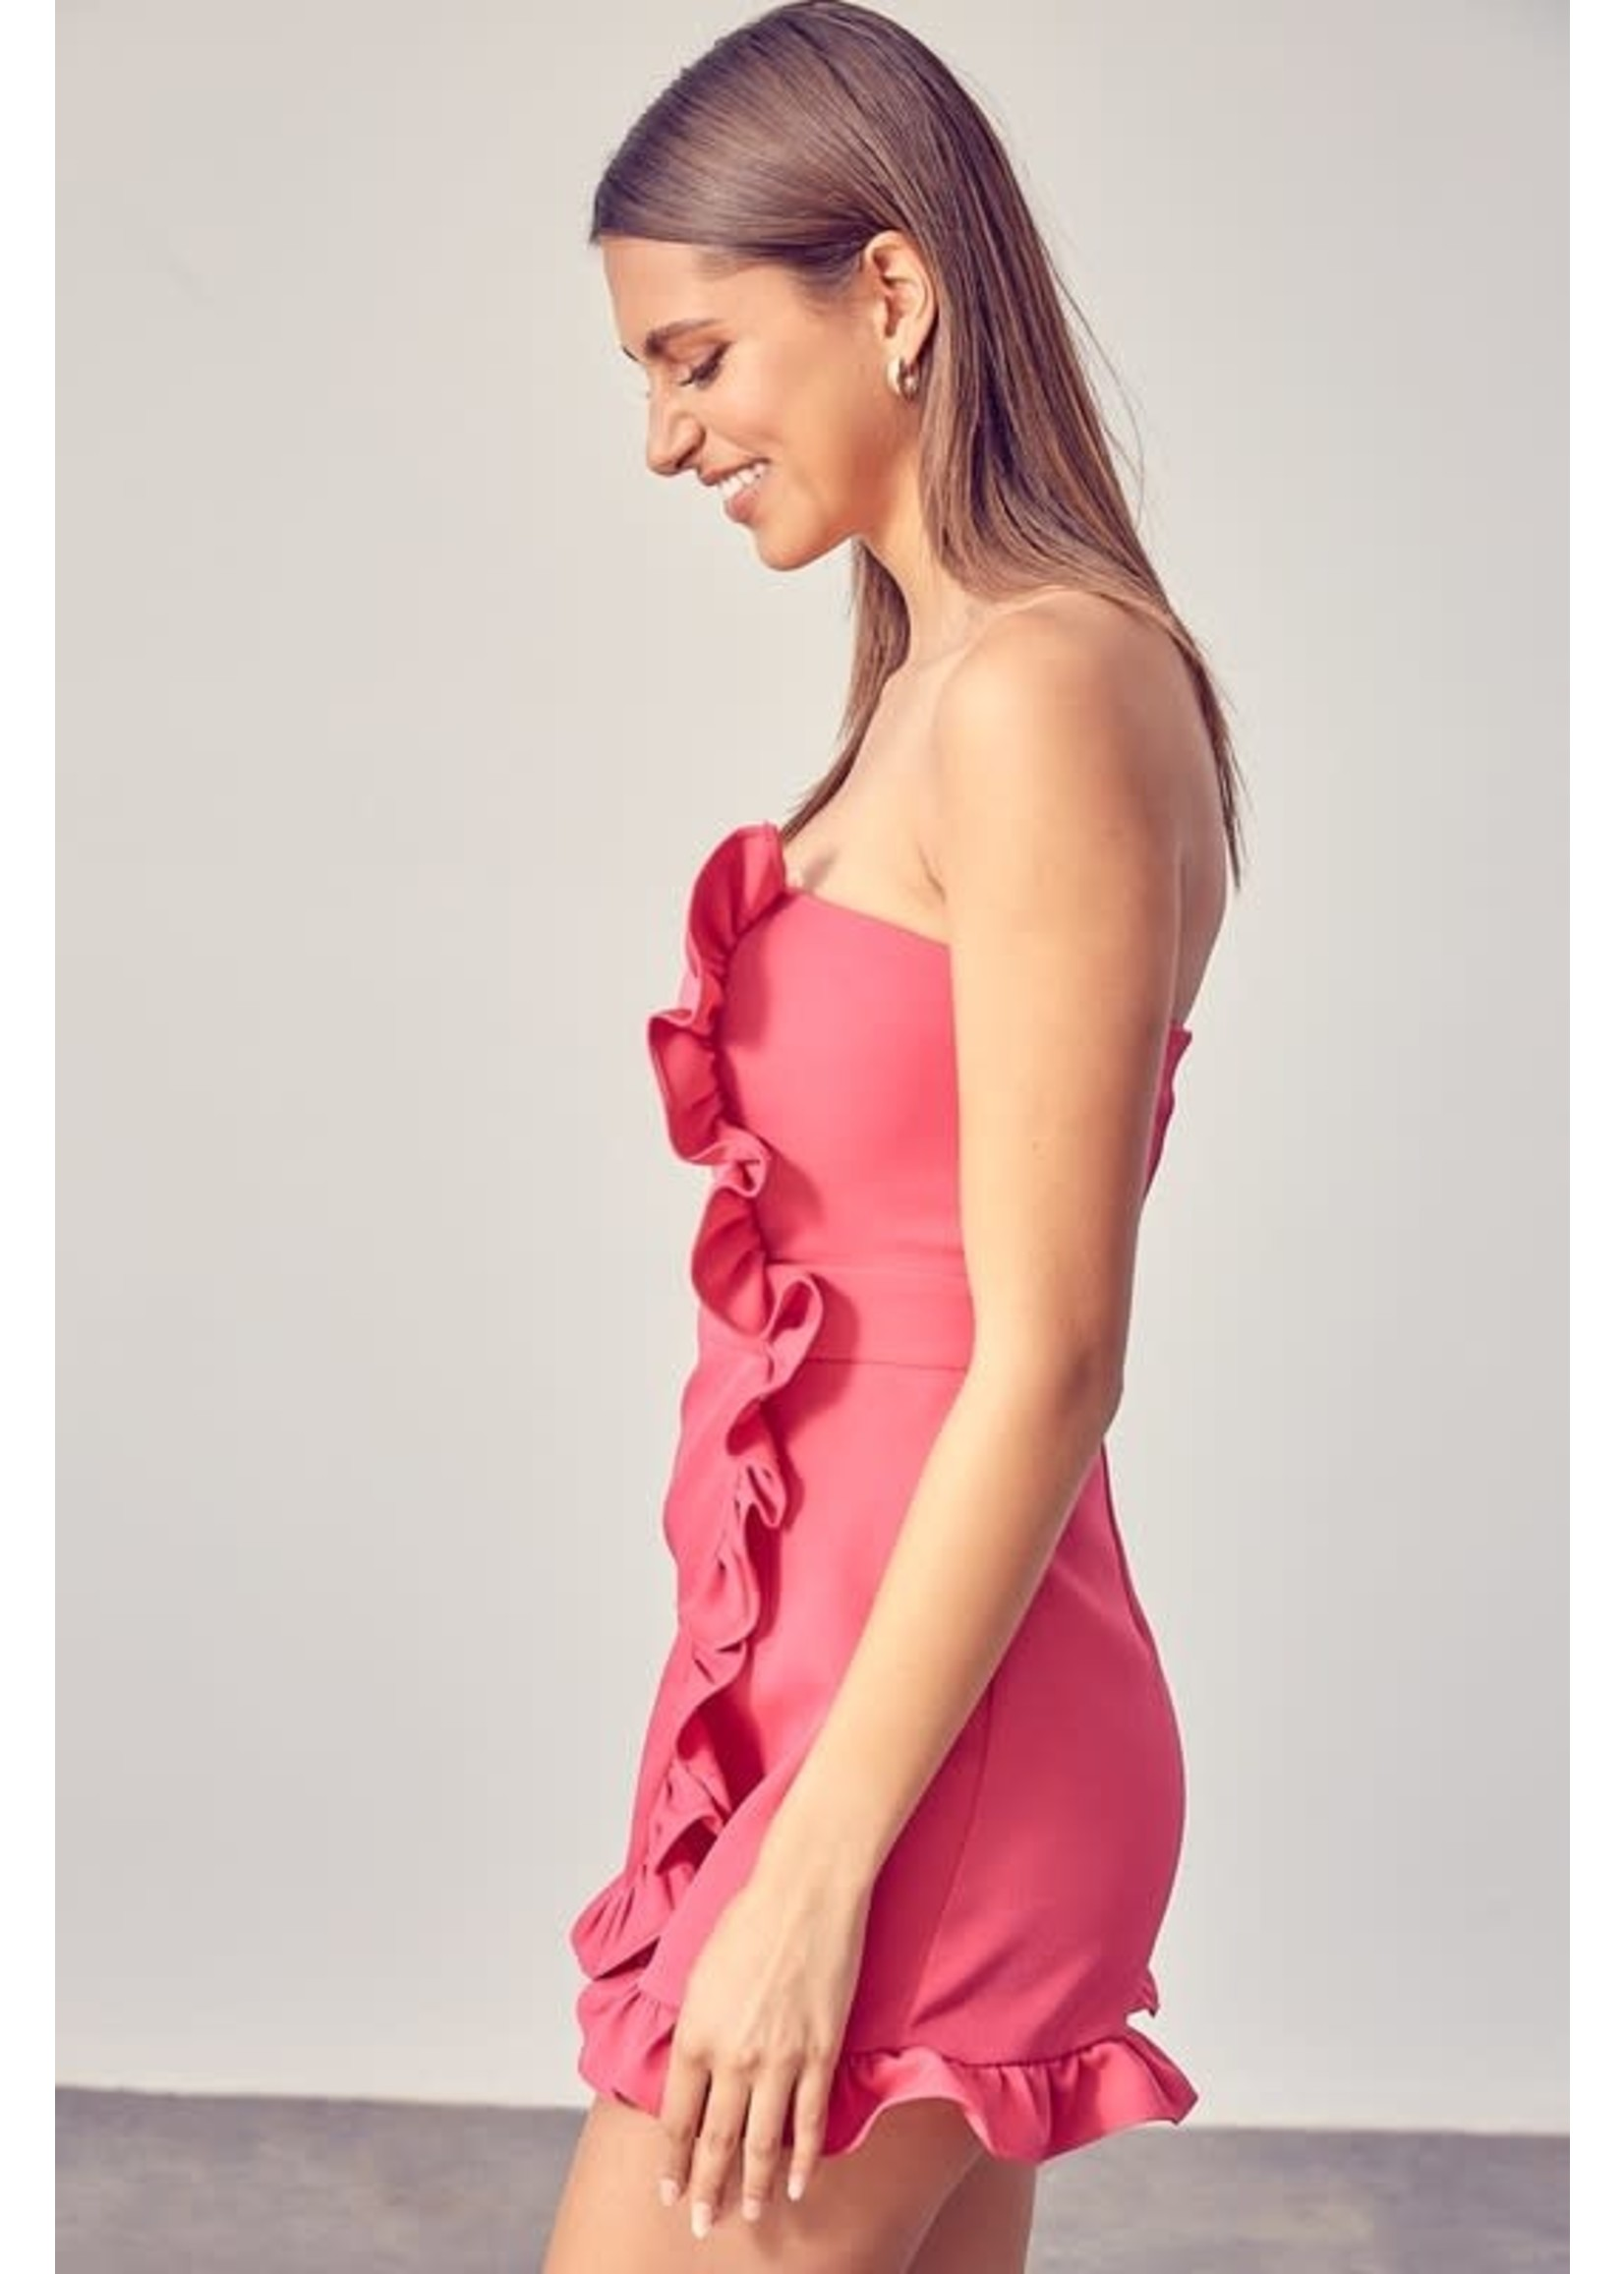 Do+BE Strapless Side Ruffle Romper - GY0916